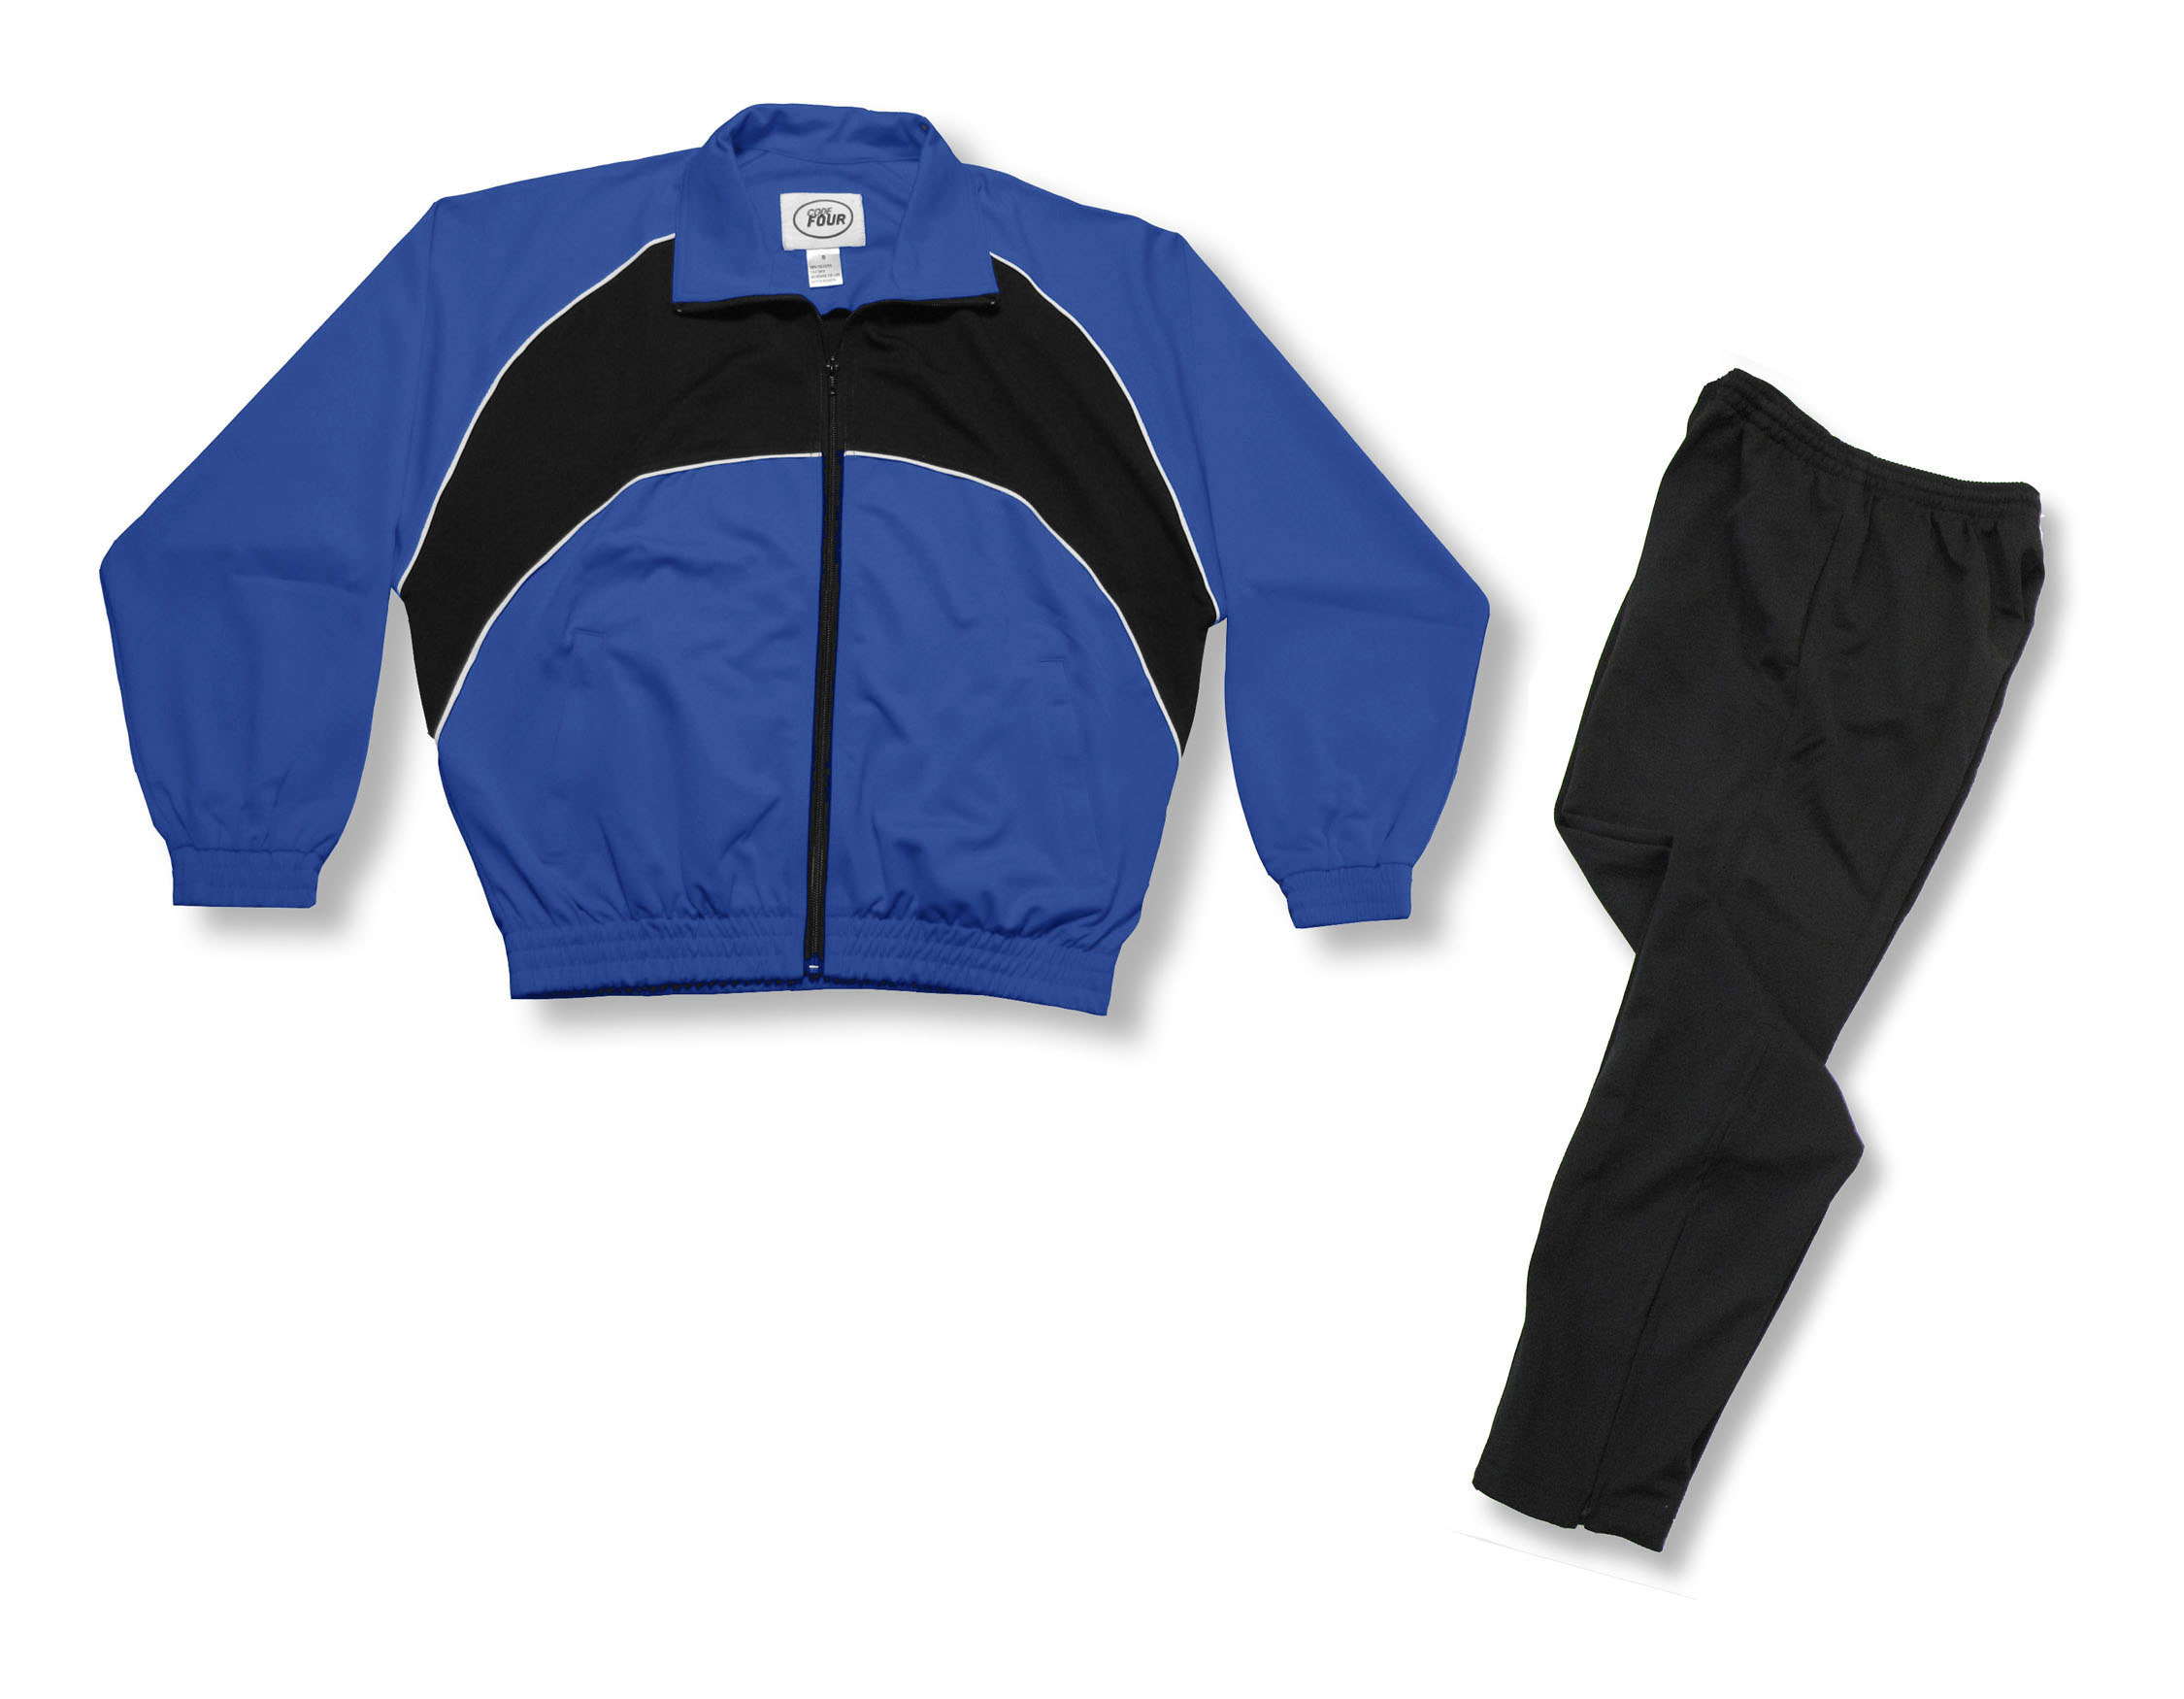 Crossfire Primo soccer warmup set in royal / black by Code Four Athletics